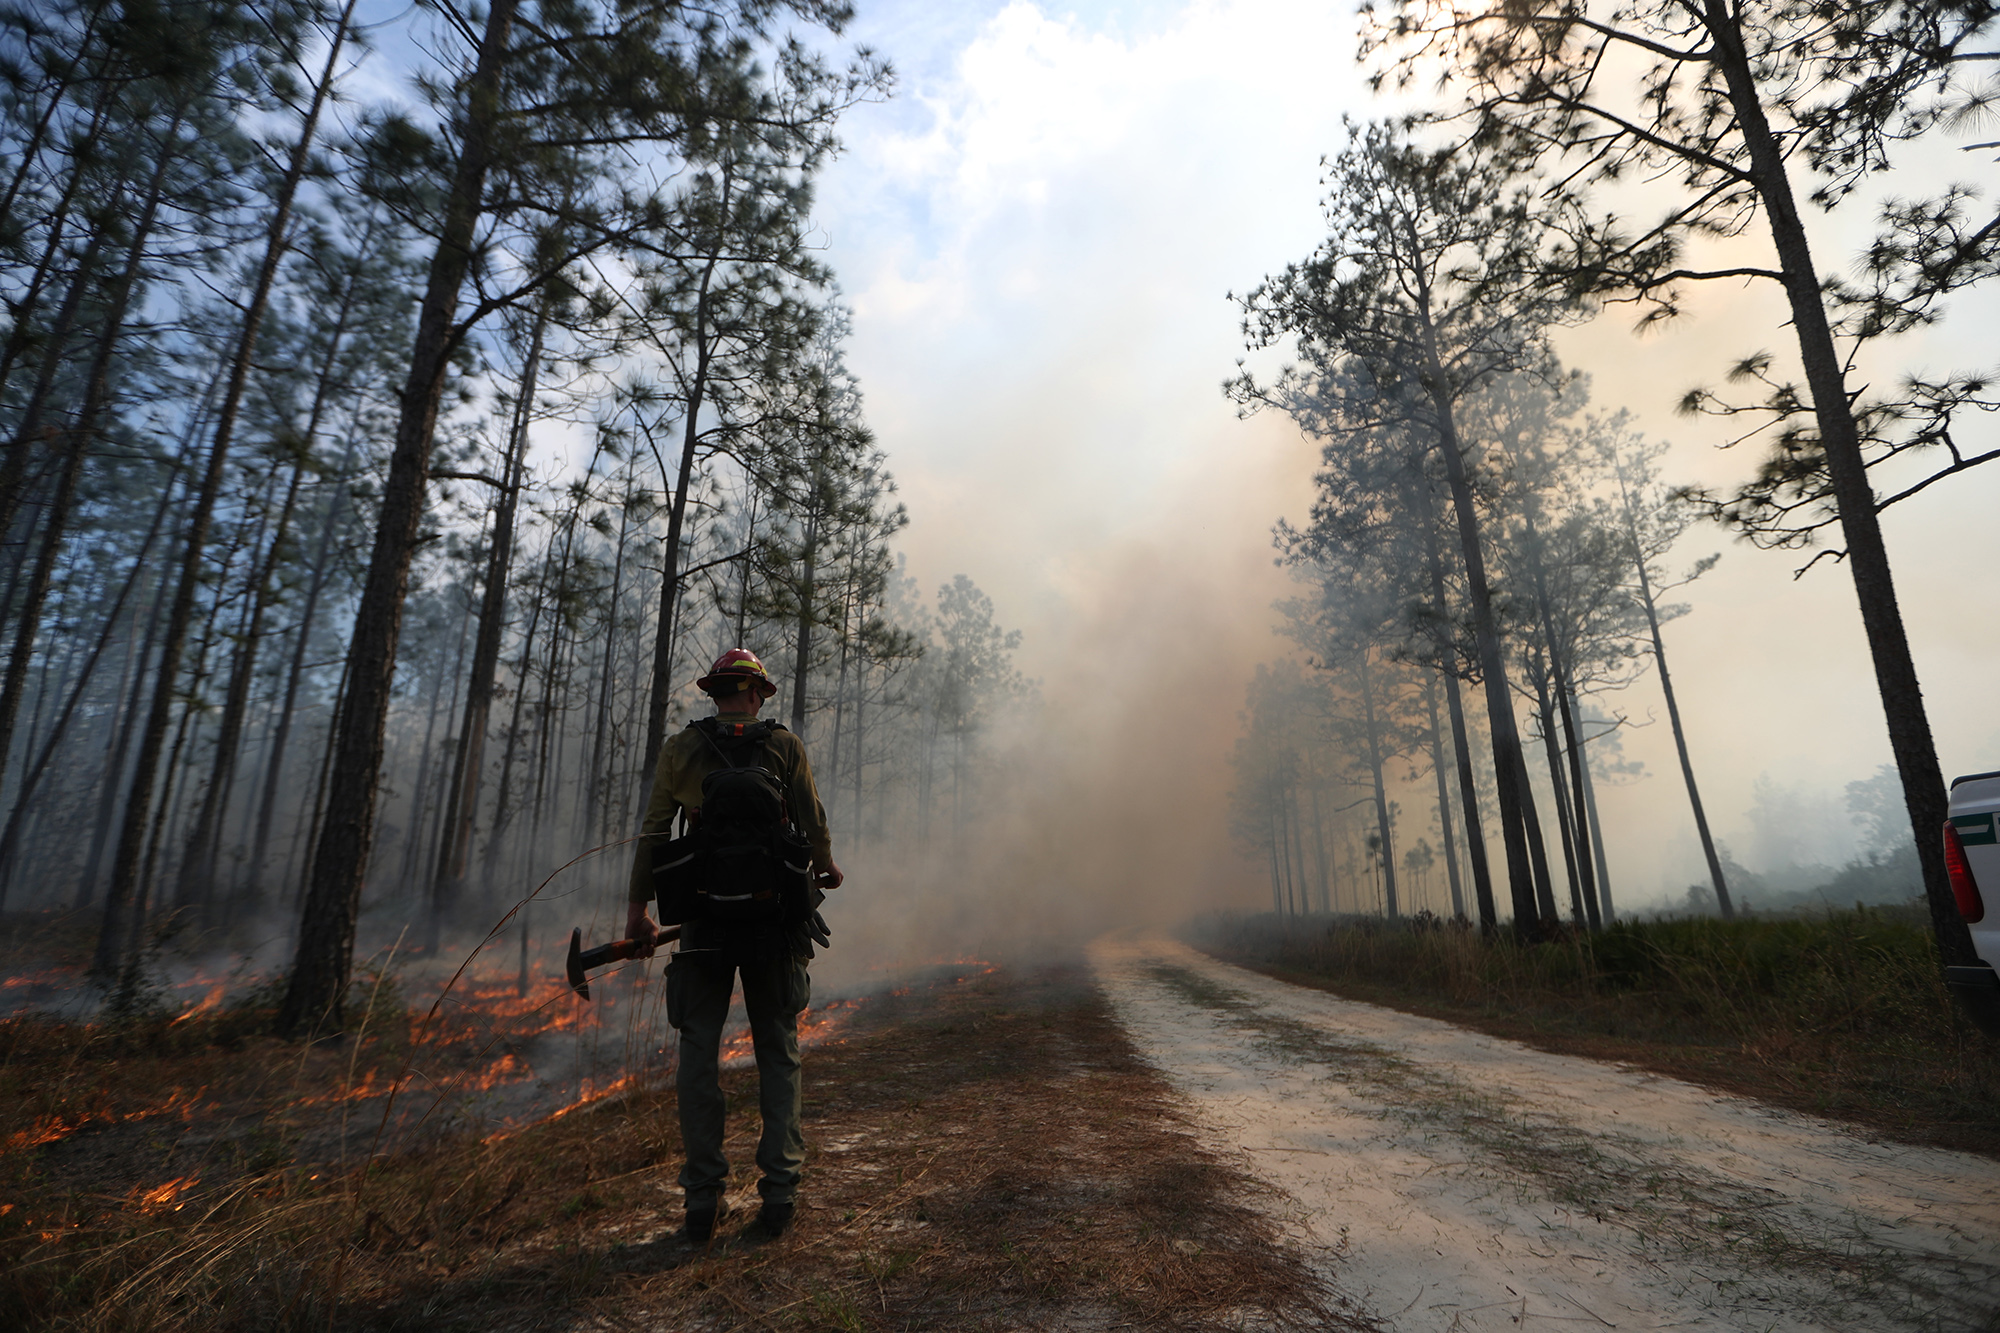 Controlled burn in the Apalachicola National Forest on Tuesday, Feb. 27, 2018.